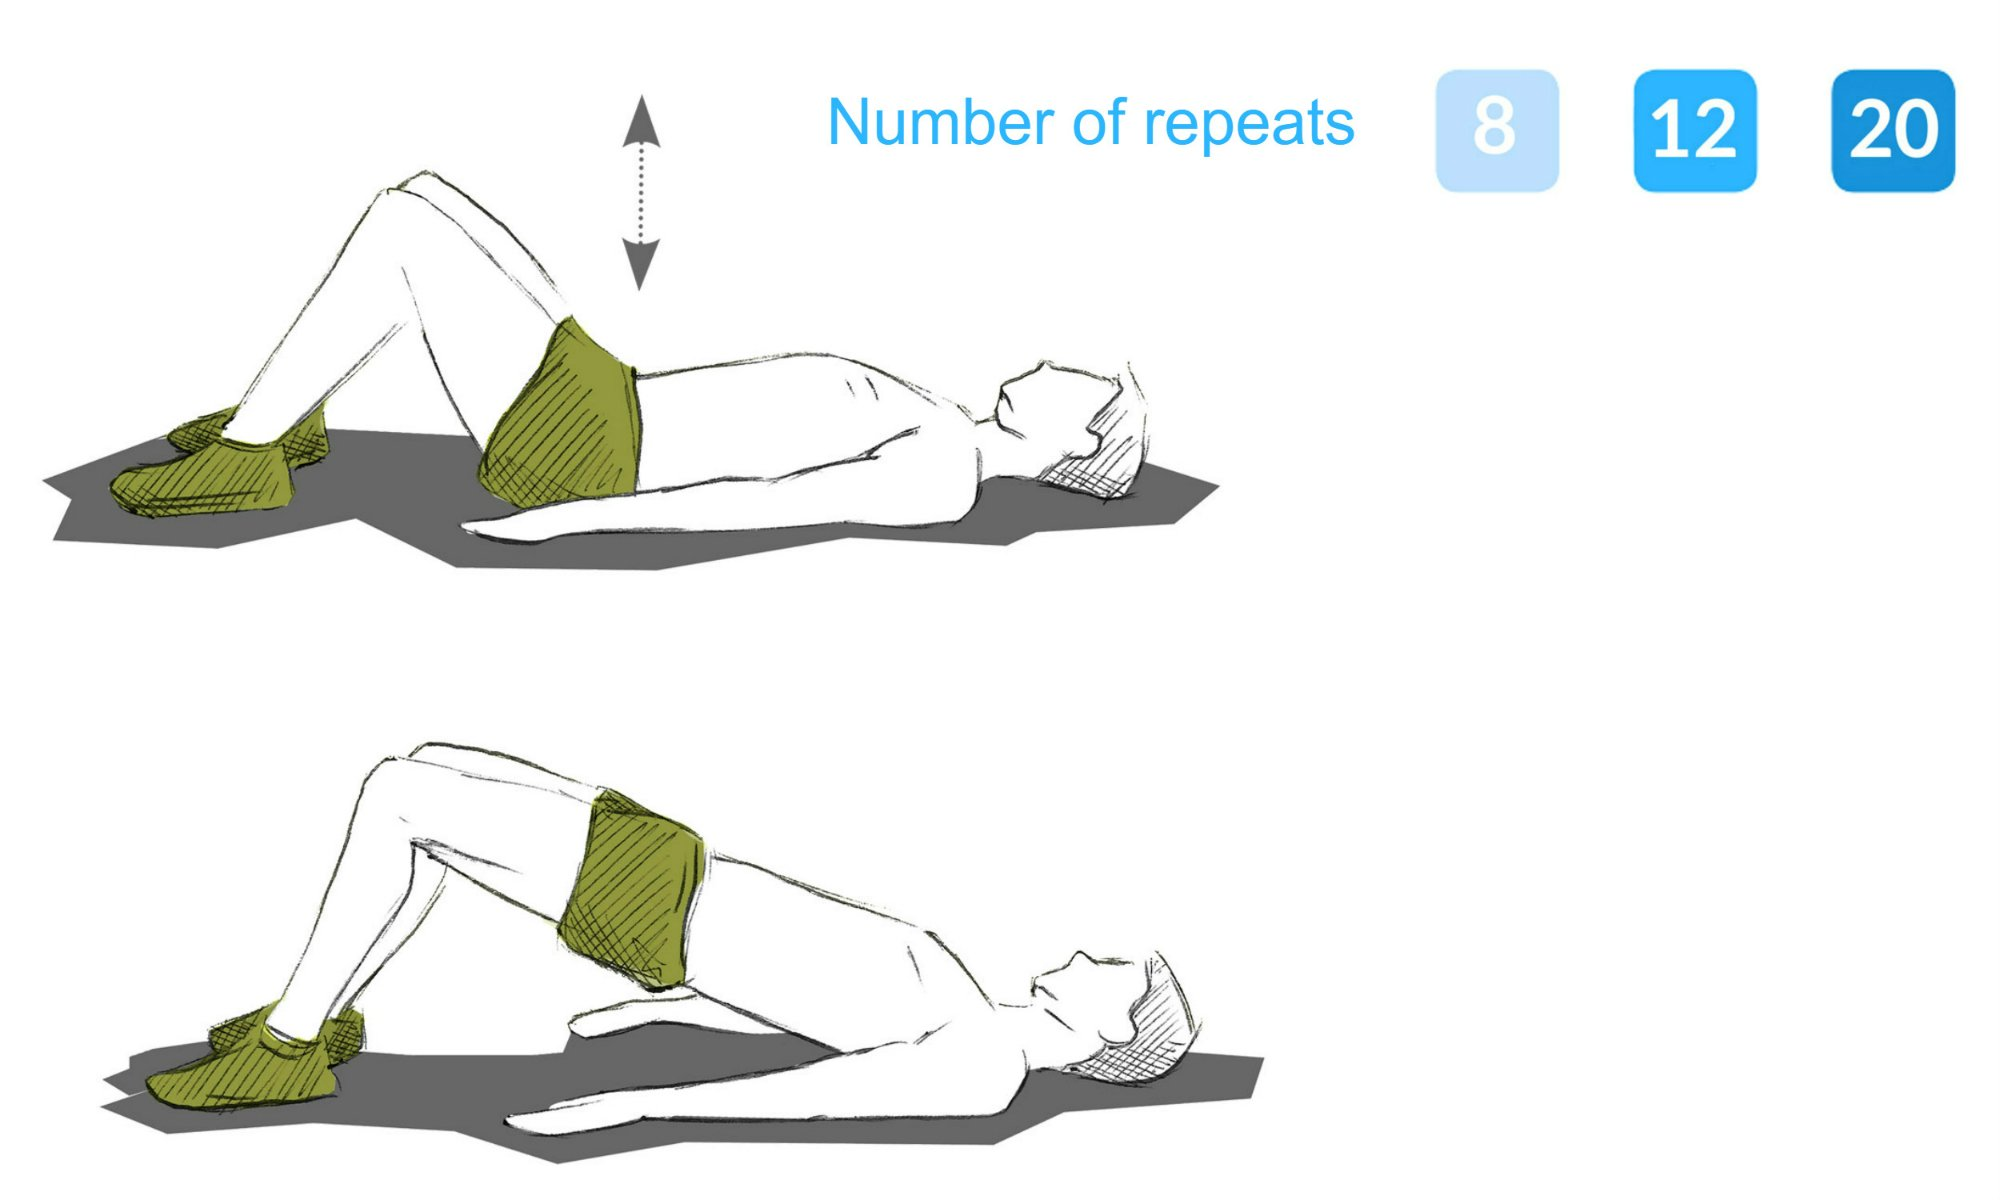 The pelvic lift exercise.